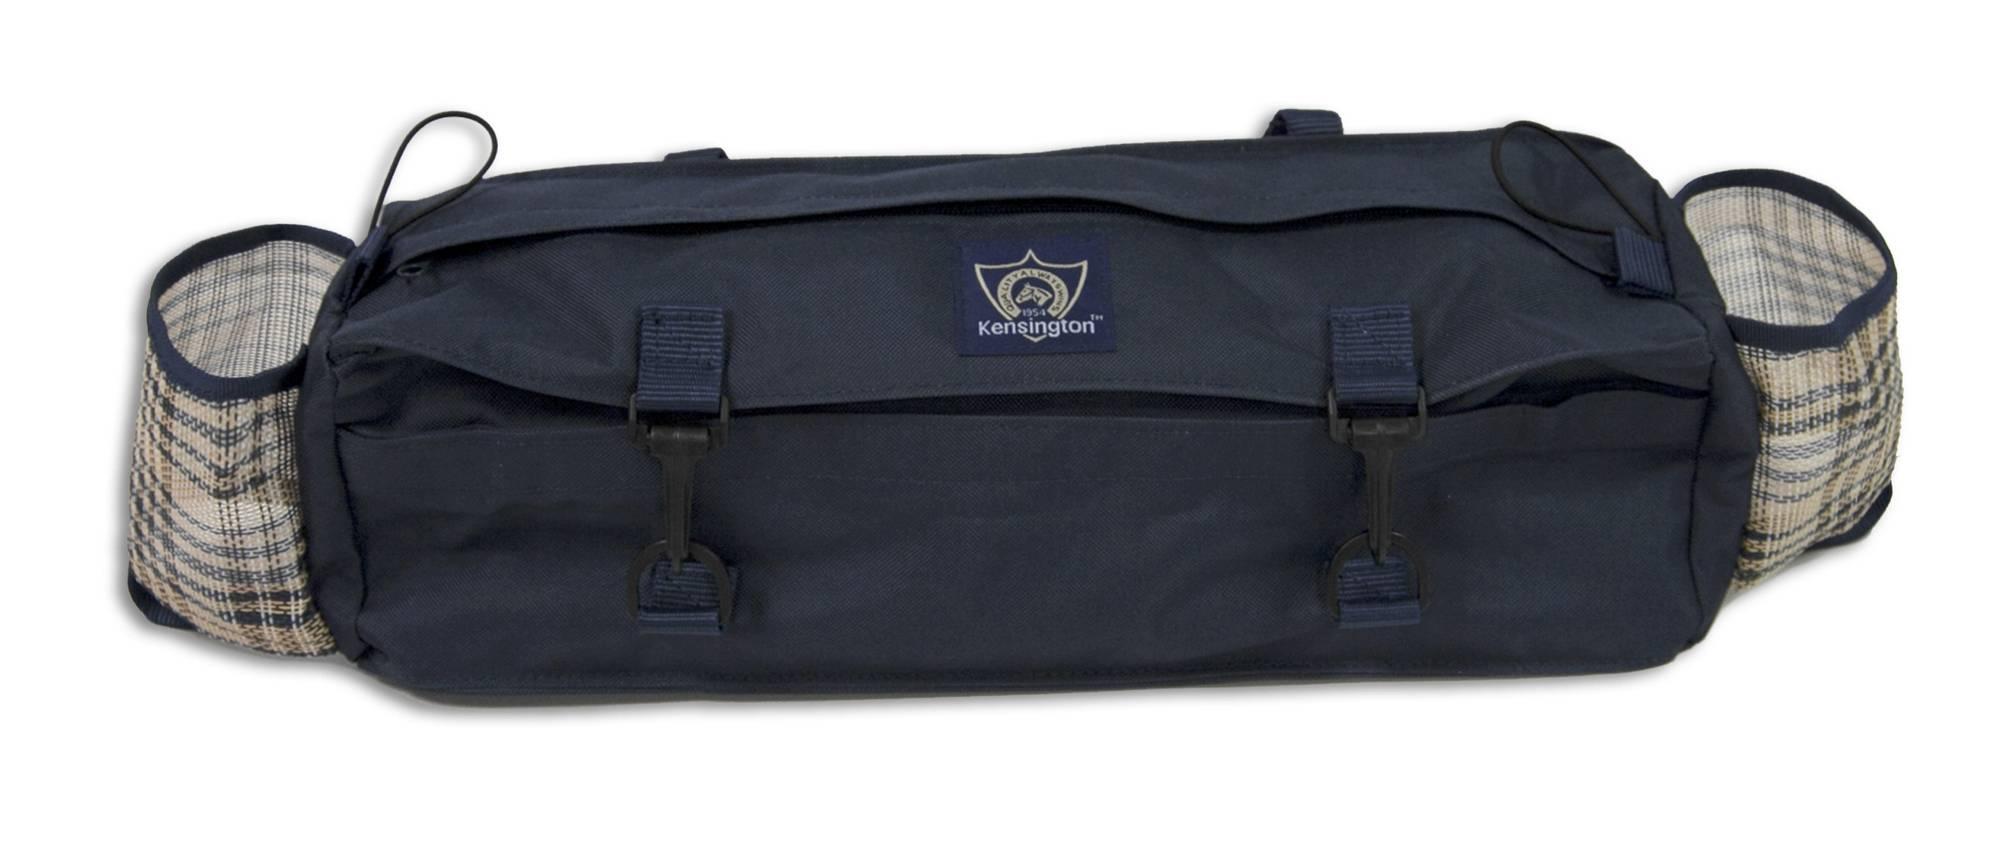 Kensington Cantle Bag